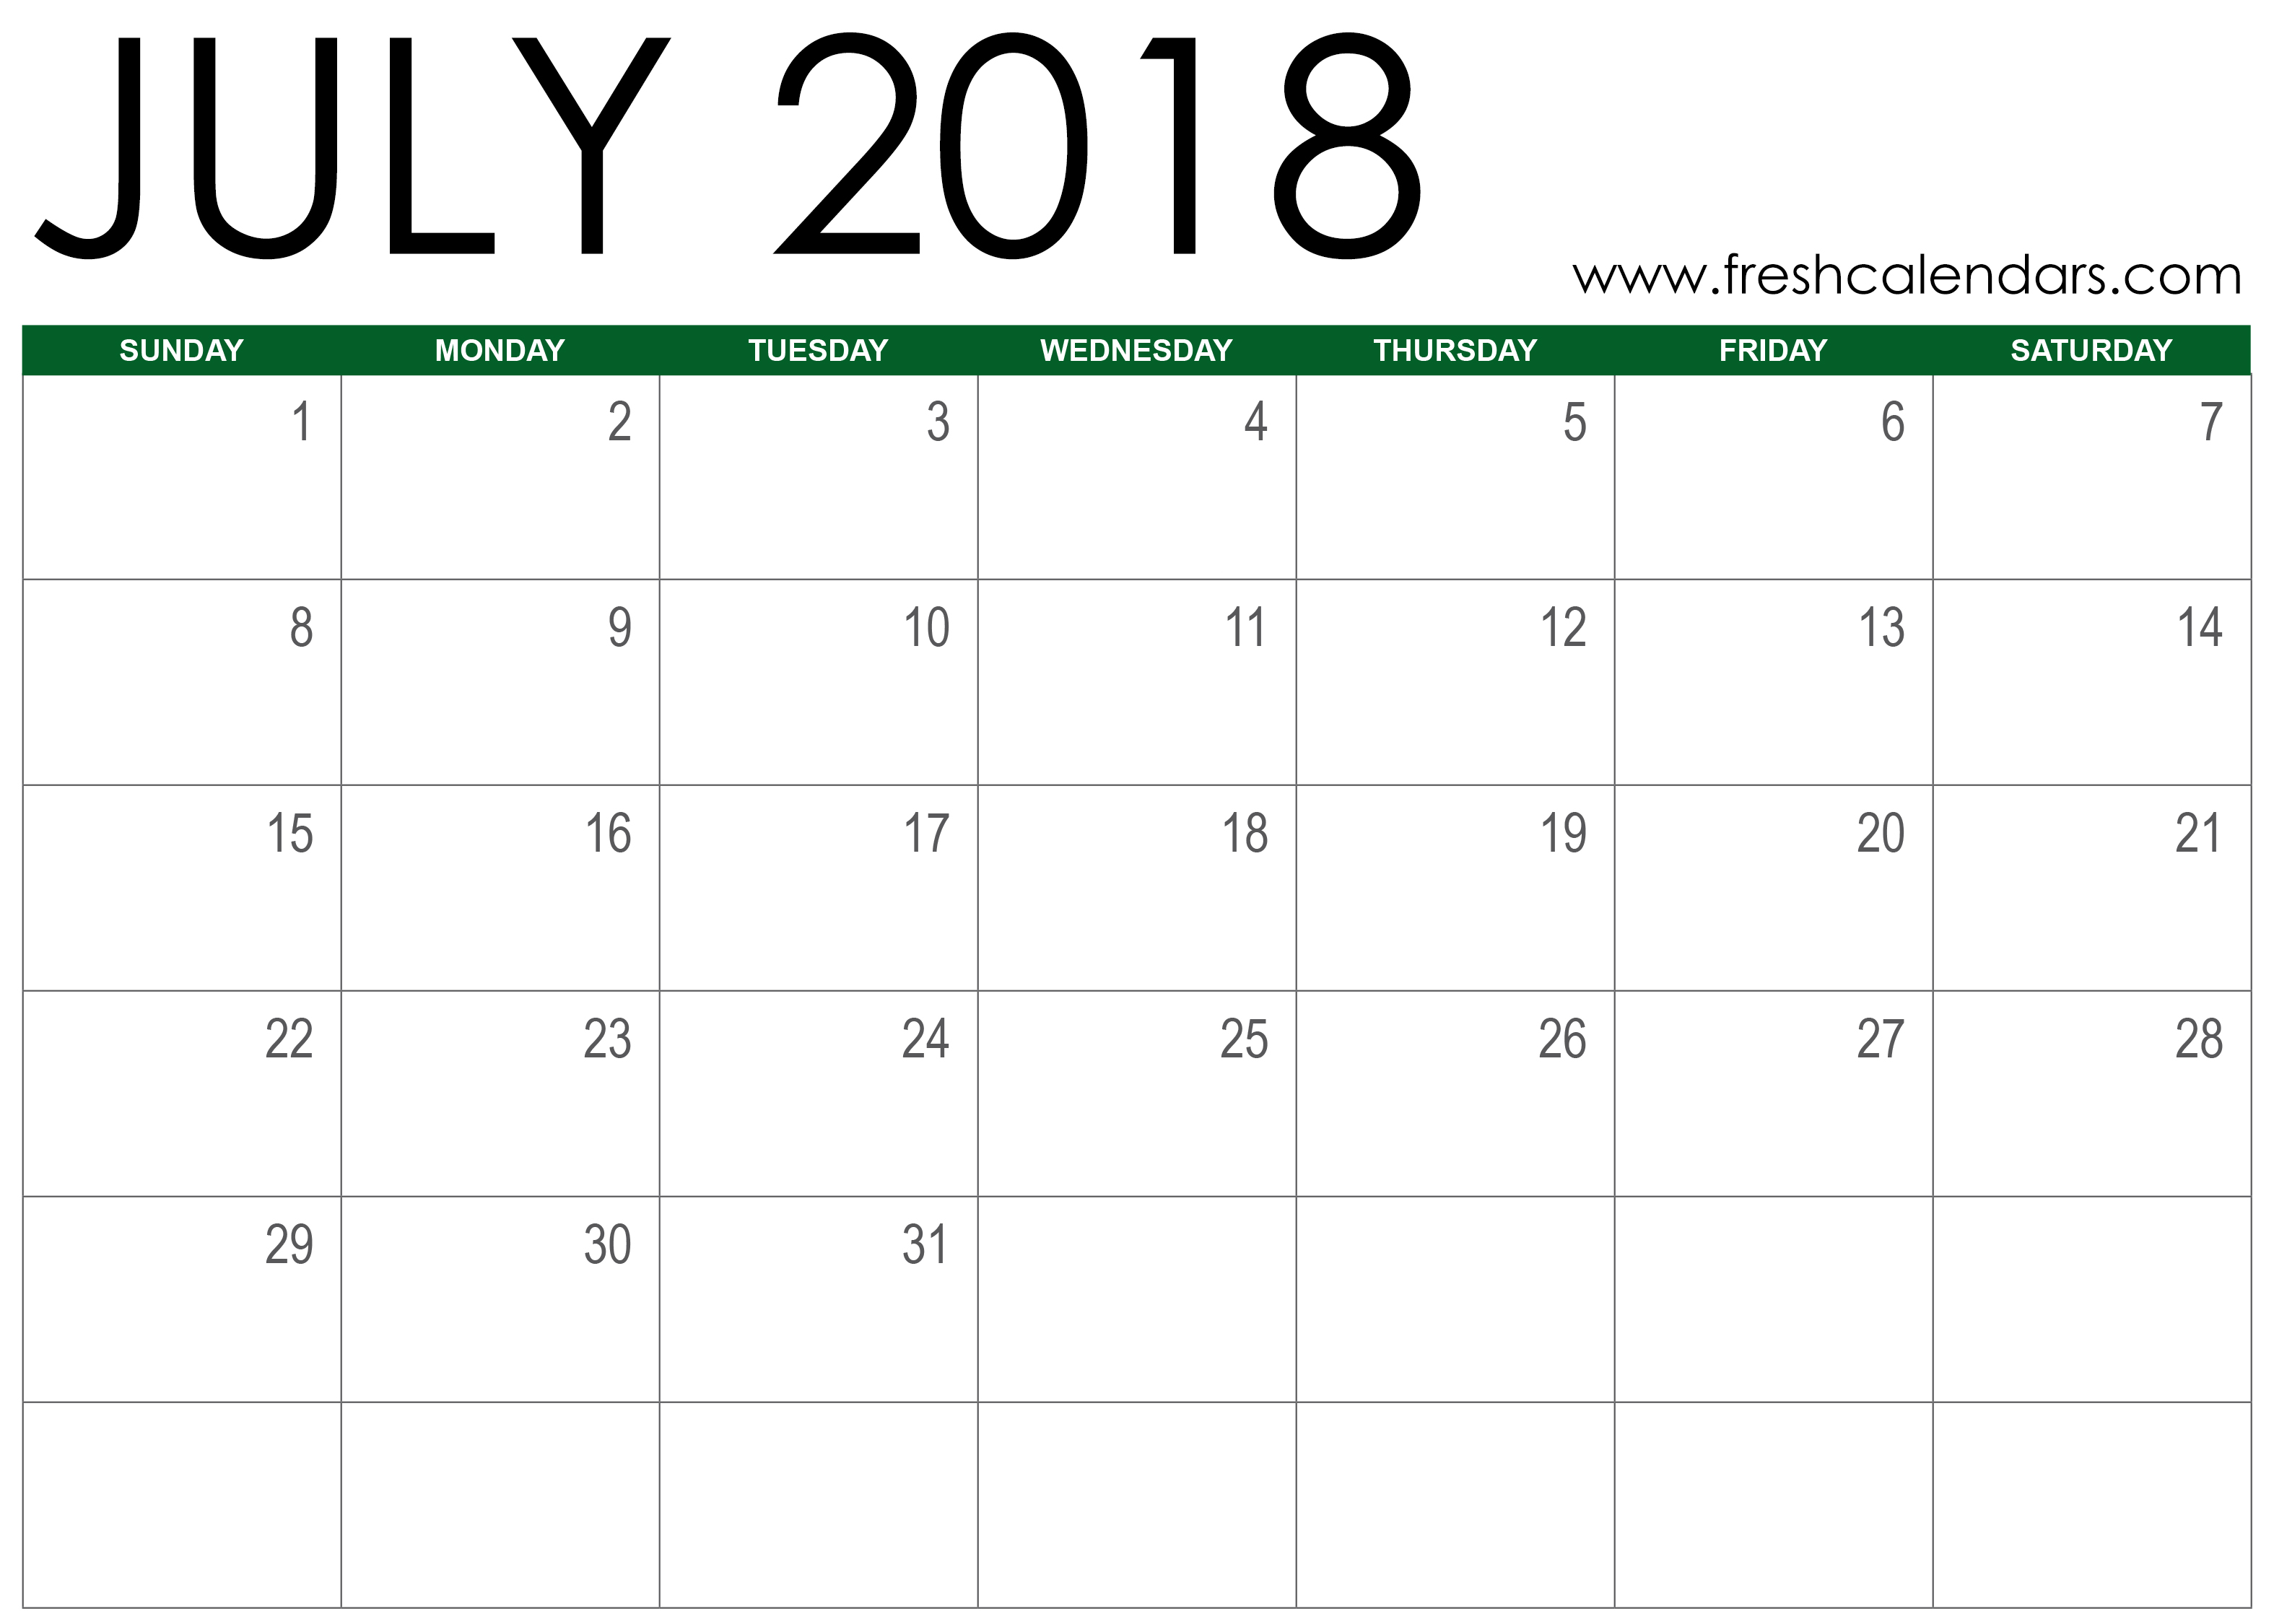 July 2018 Calendar Printable Online Green